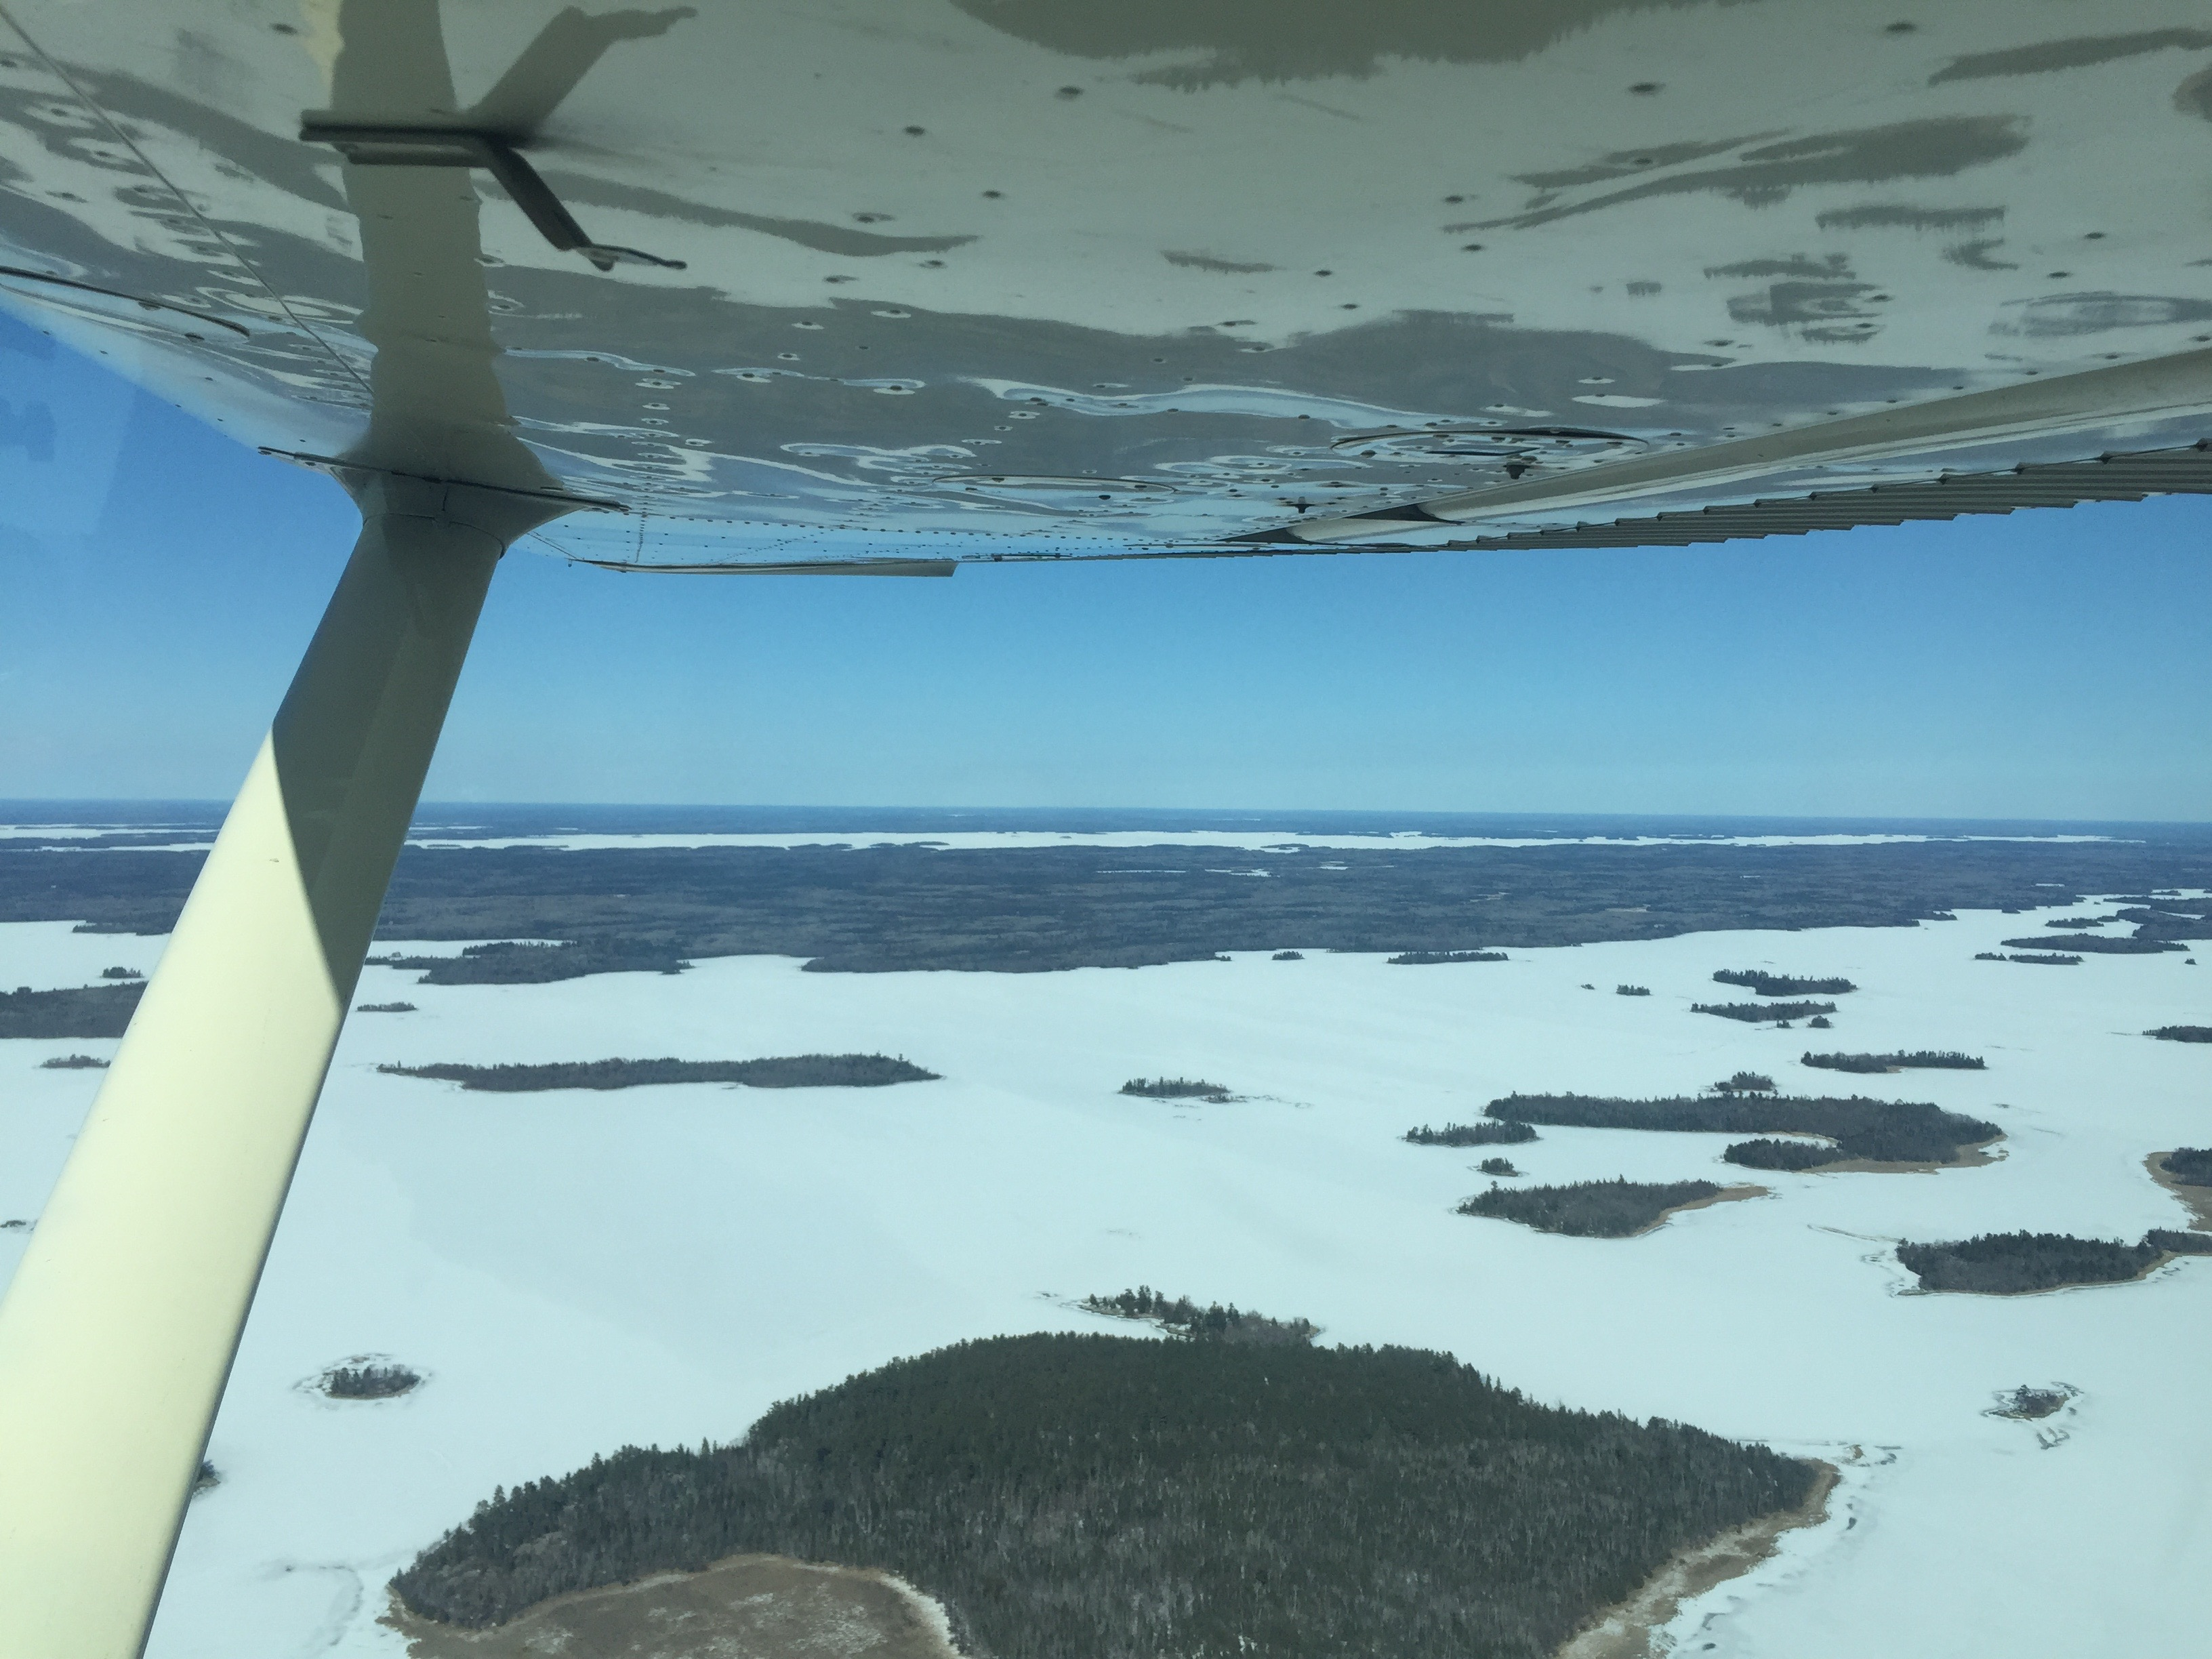 Spring Flying Over Frozen Lakes